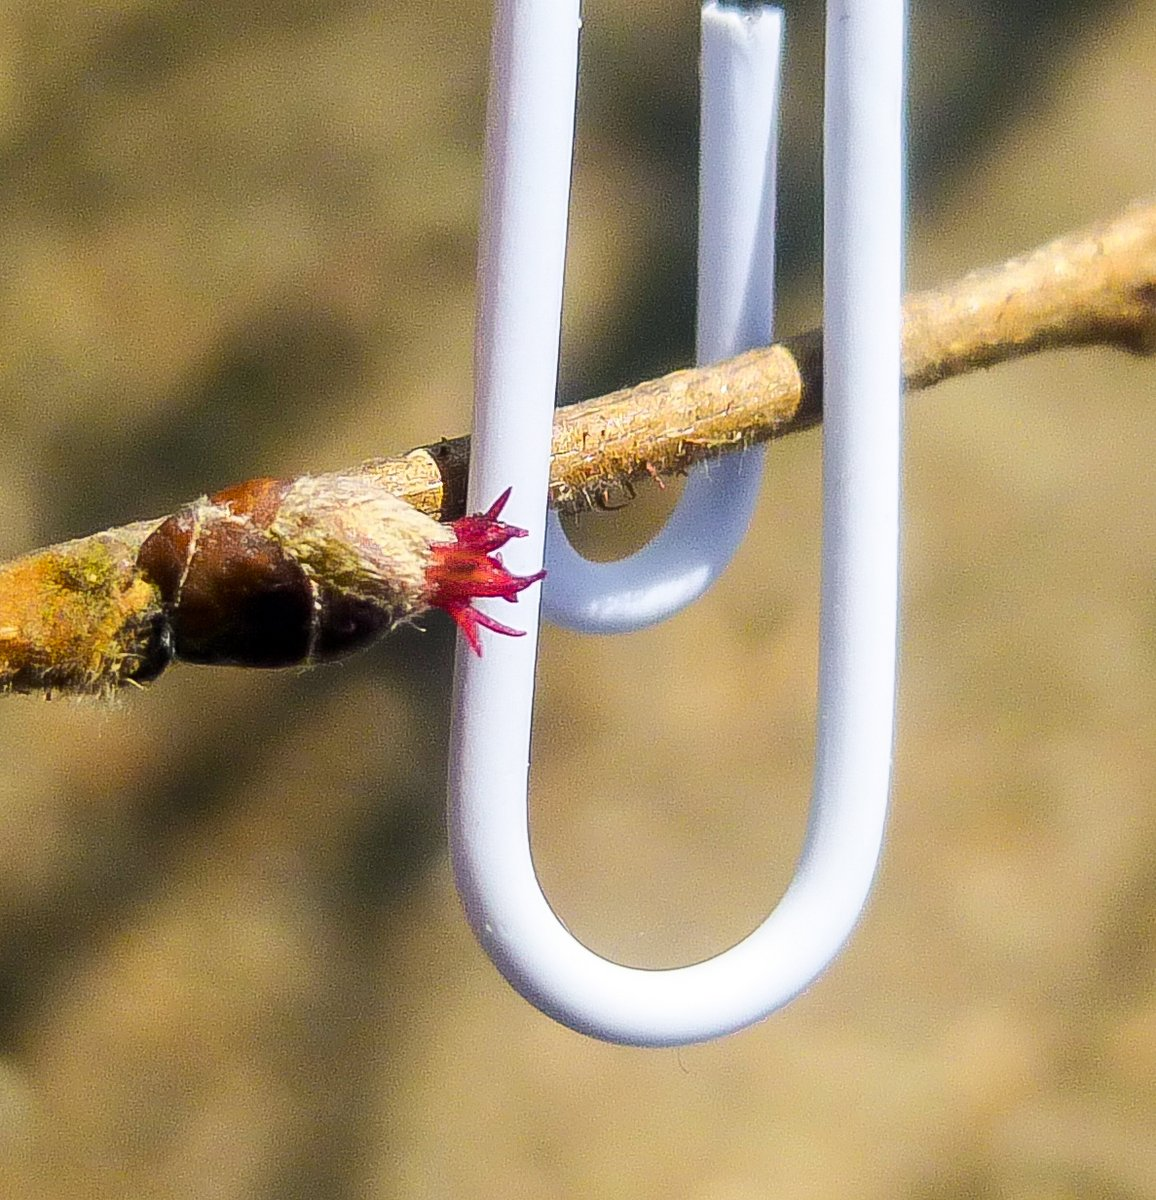 3. Female Hazel Blossom with Paper Clip